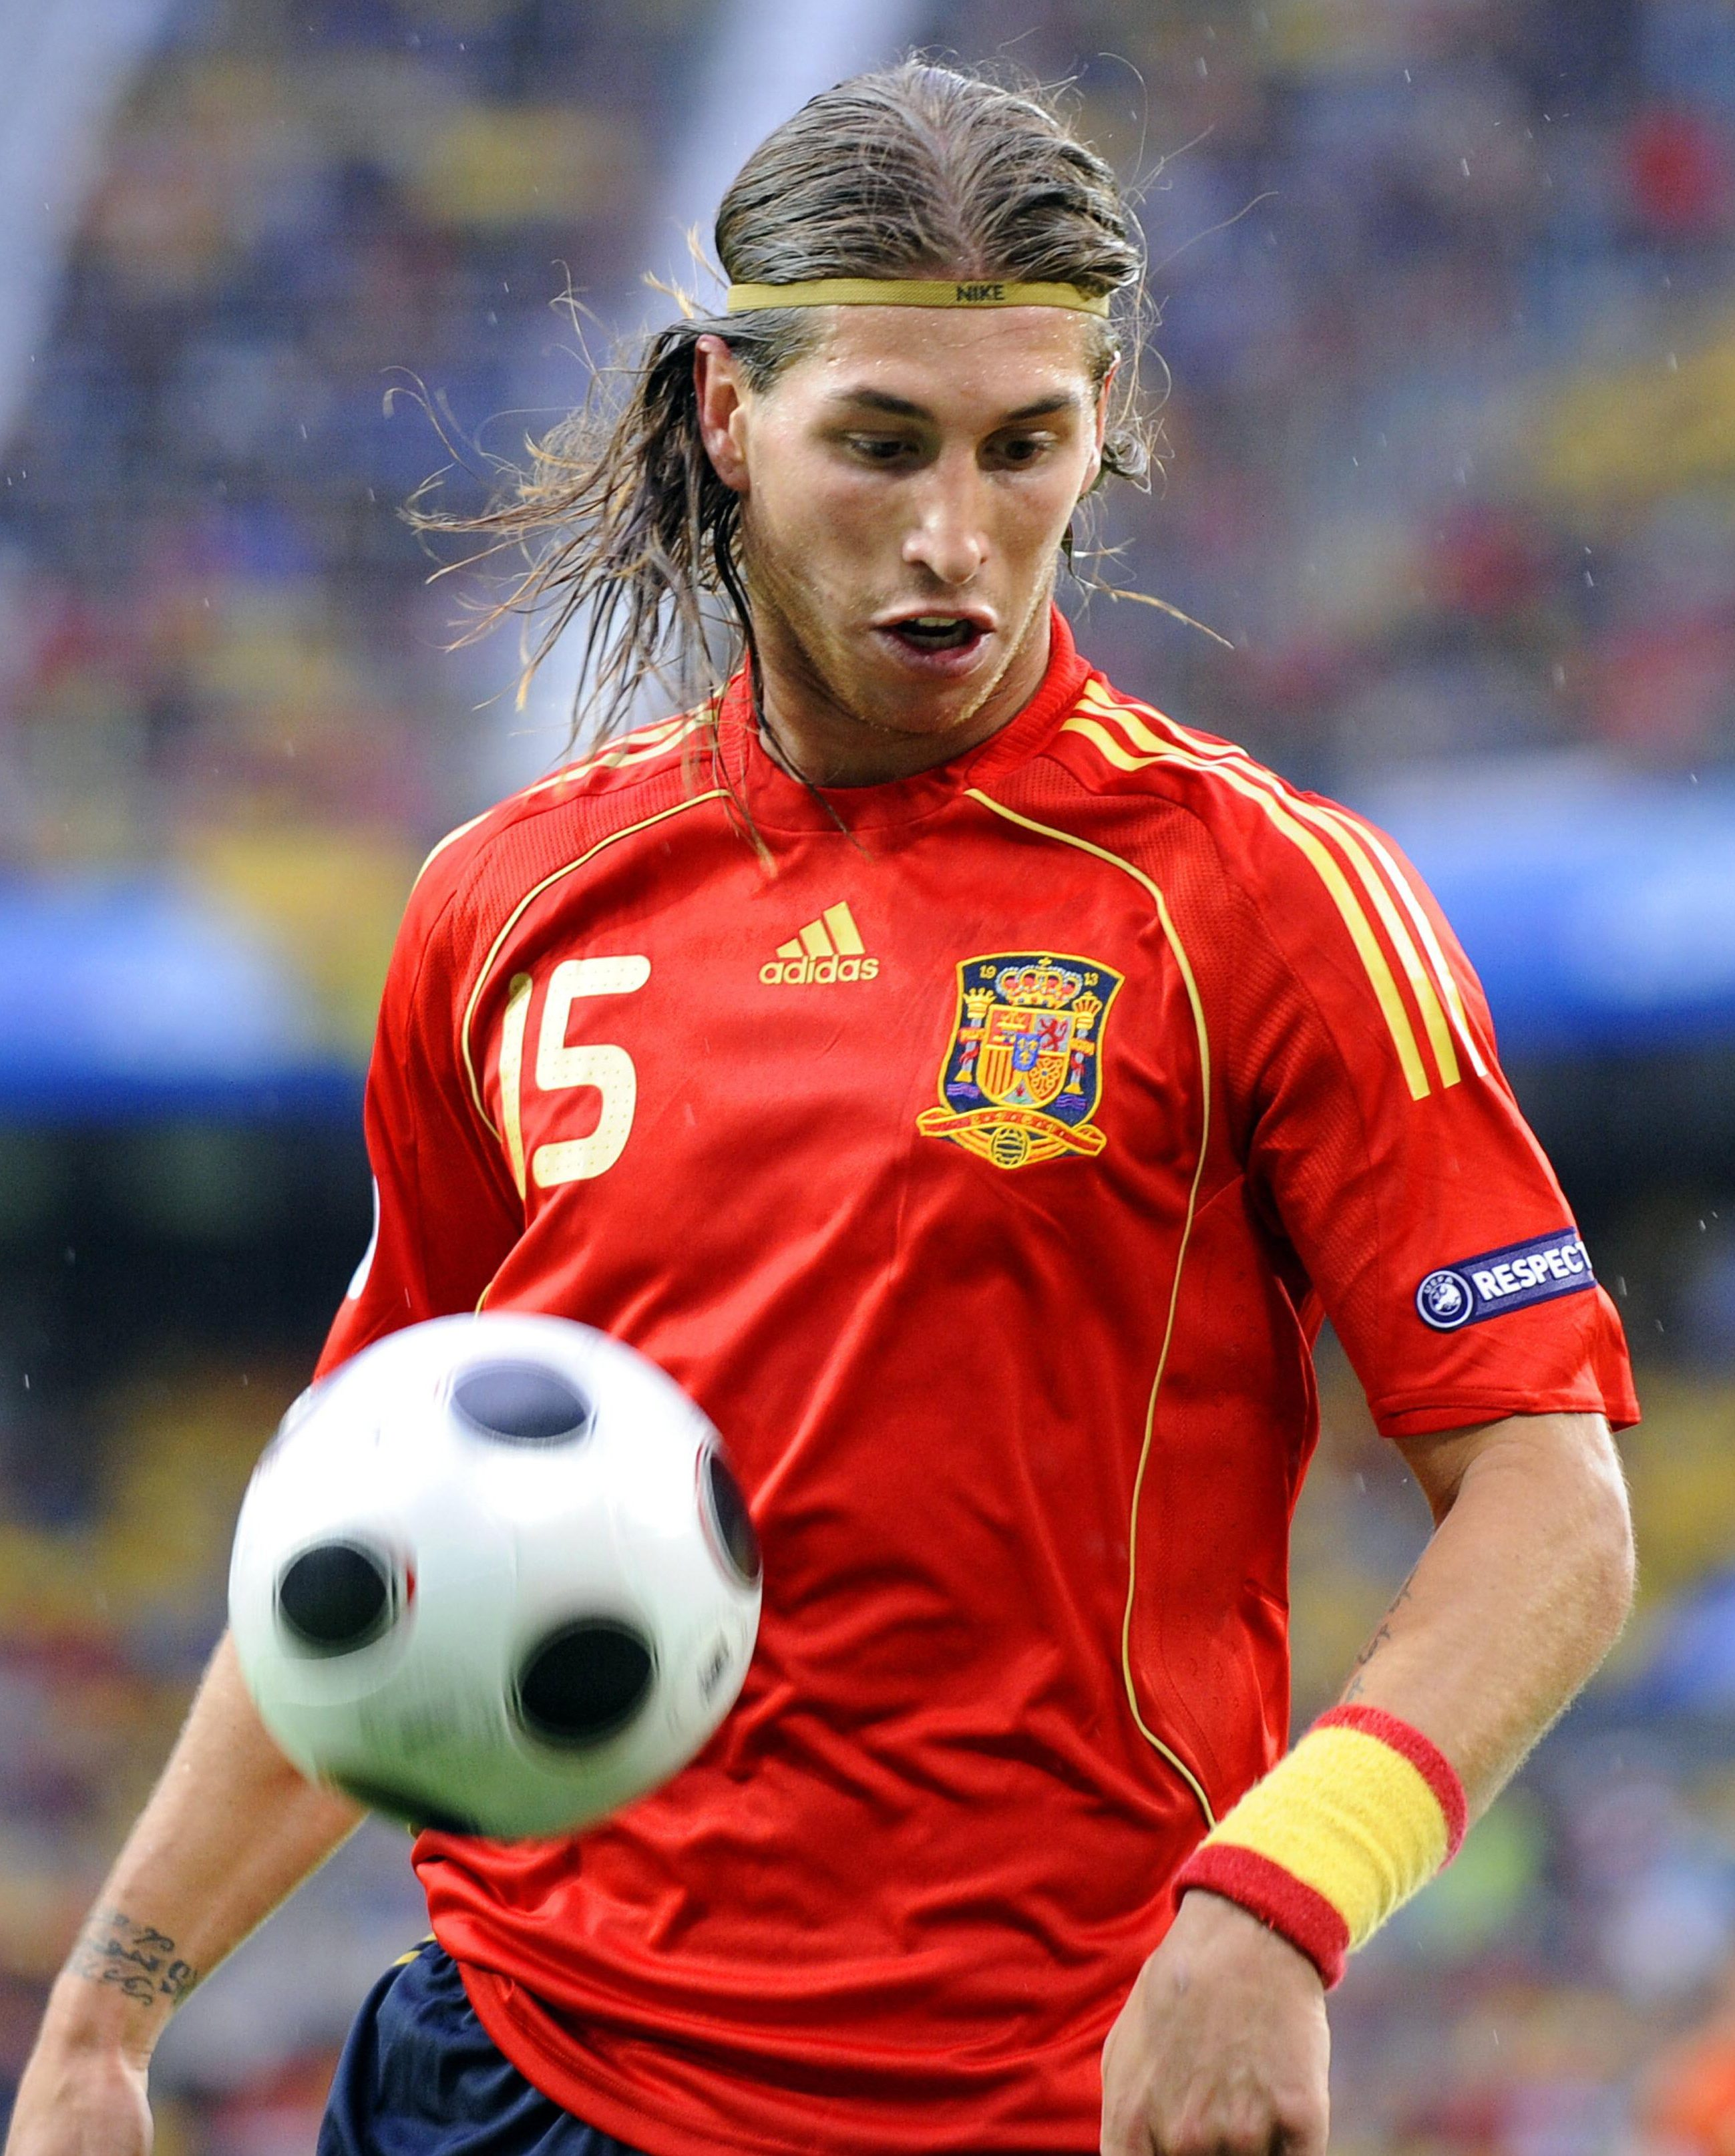 Never forget hairband Ramos